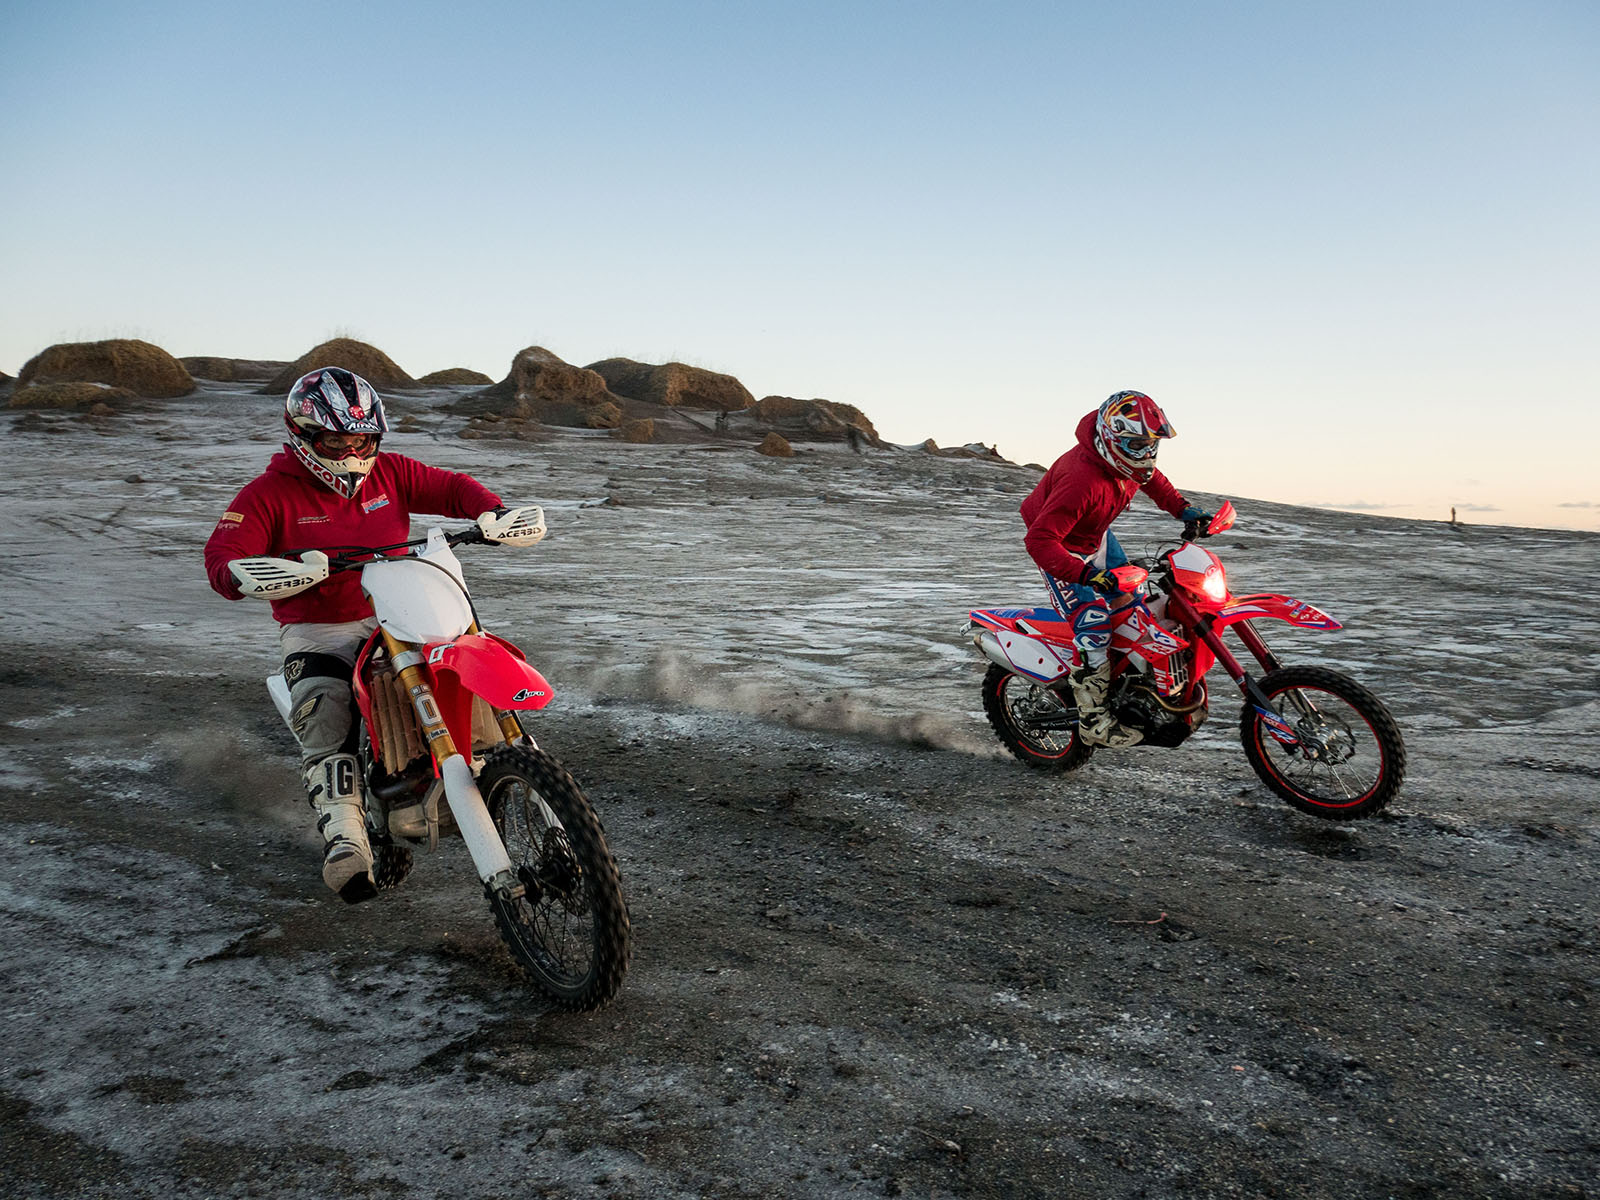 Jói training at Sandvík for the Abu Dhabi 2016 Desert Challenge with his wife Guðný one month after she gave birth to their son.